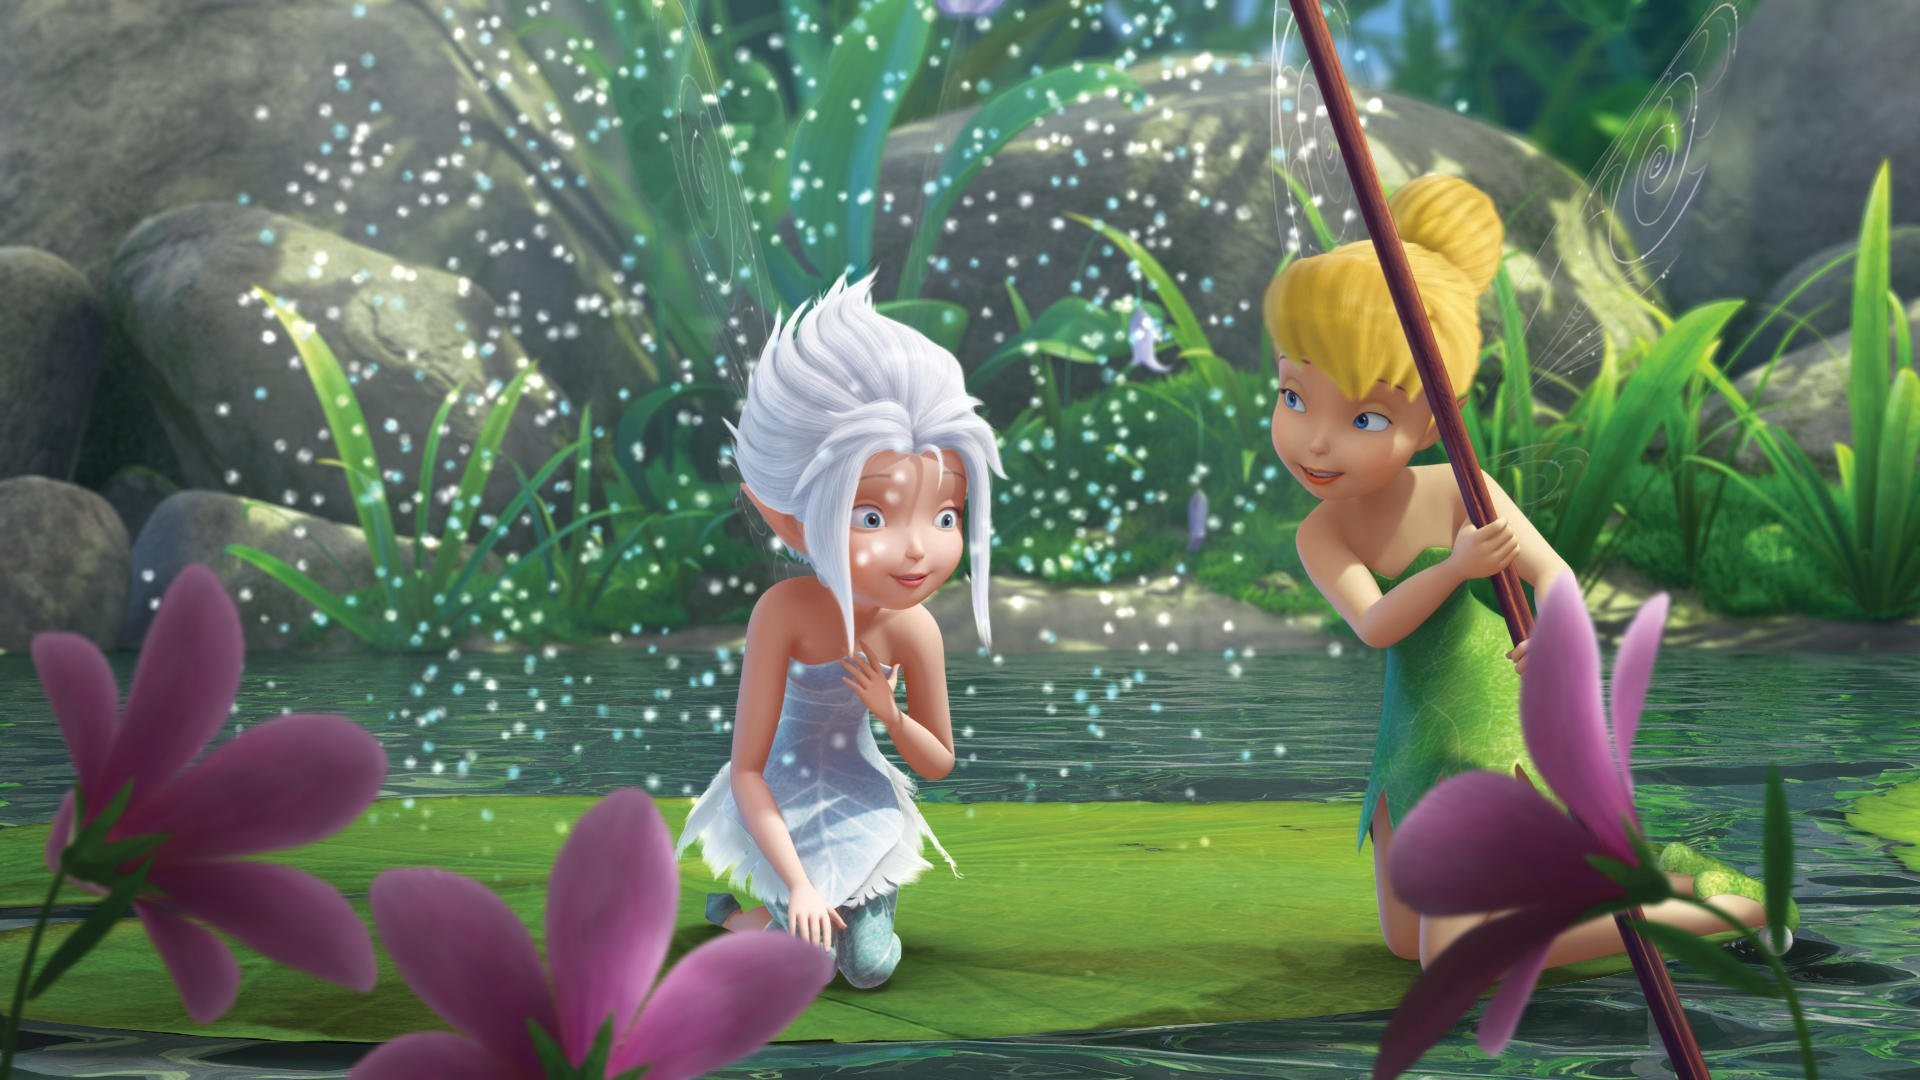 1920x1080 Tinkerbell Secret Of The Wings 814383 ...